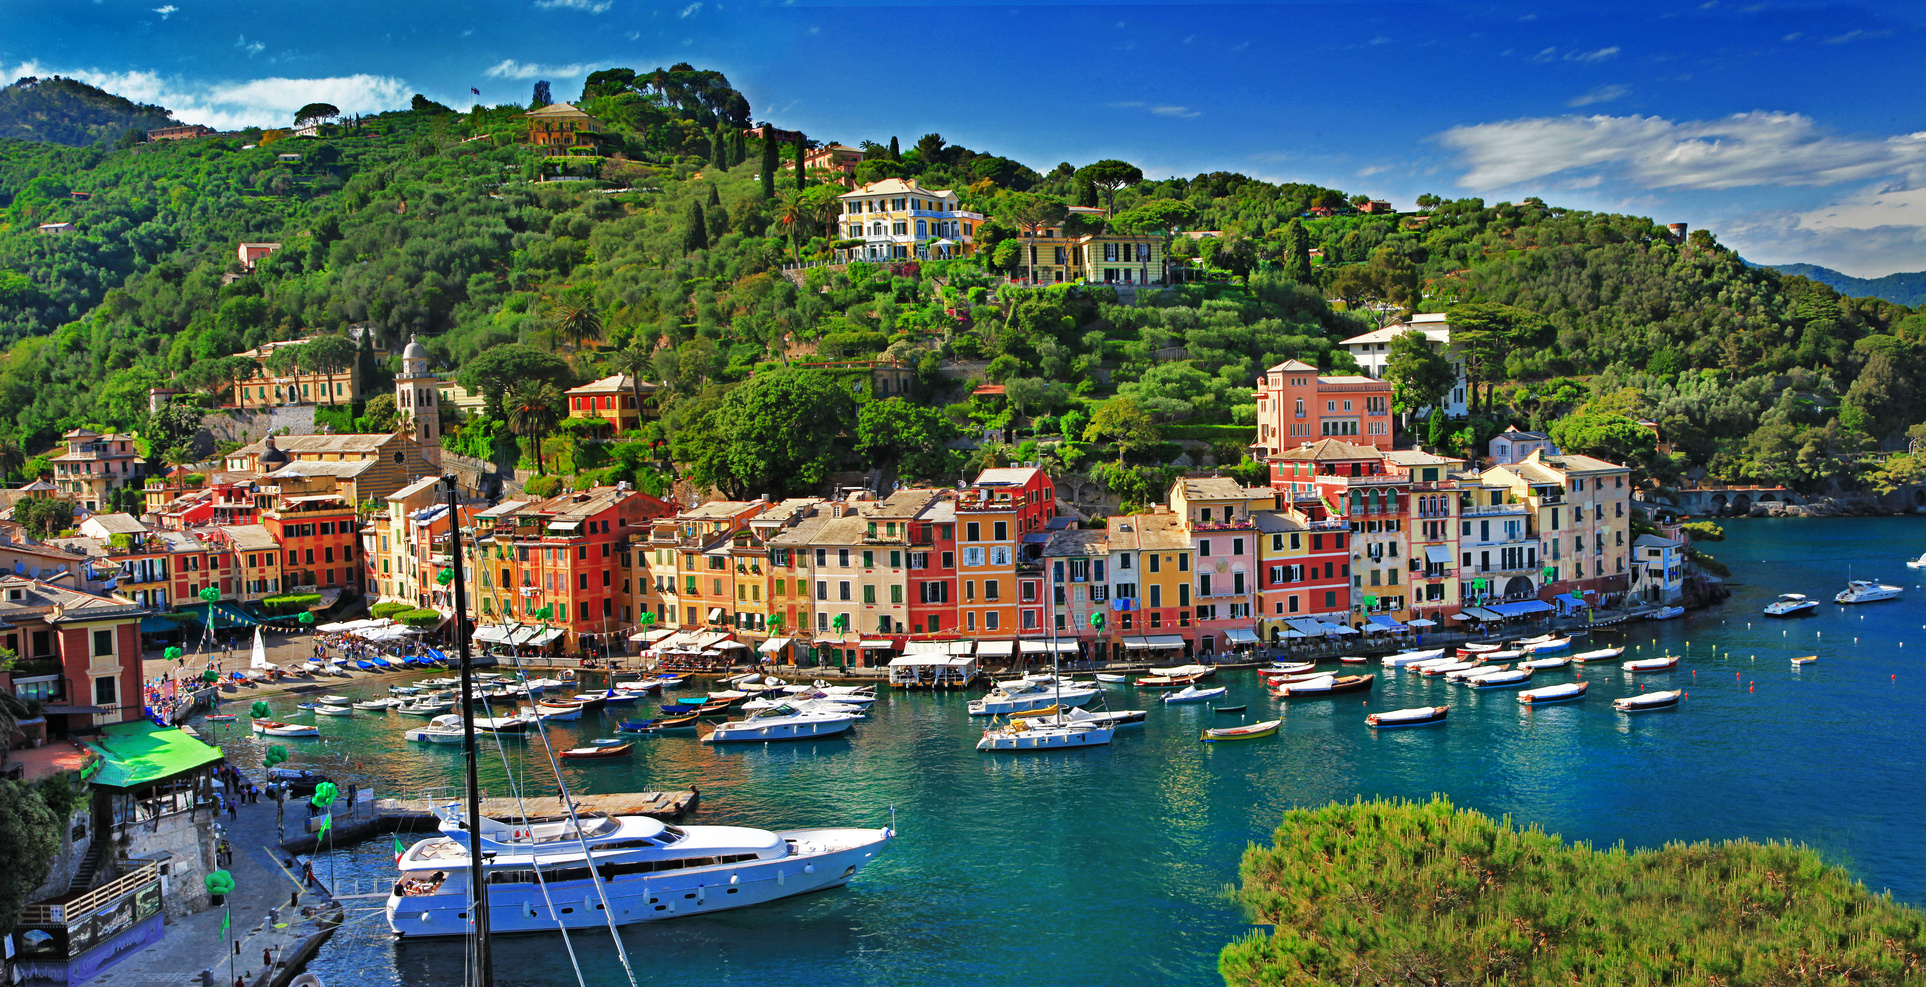 view of Portofino - beautiful town of Ligurian coast, Italy